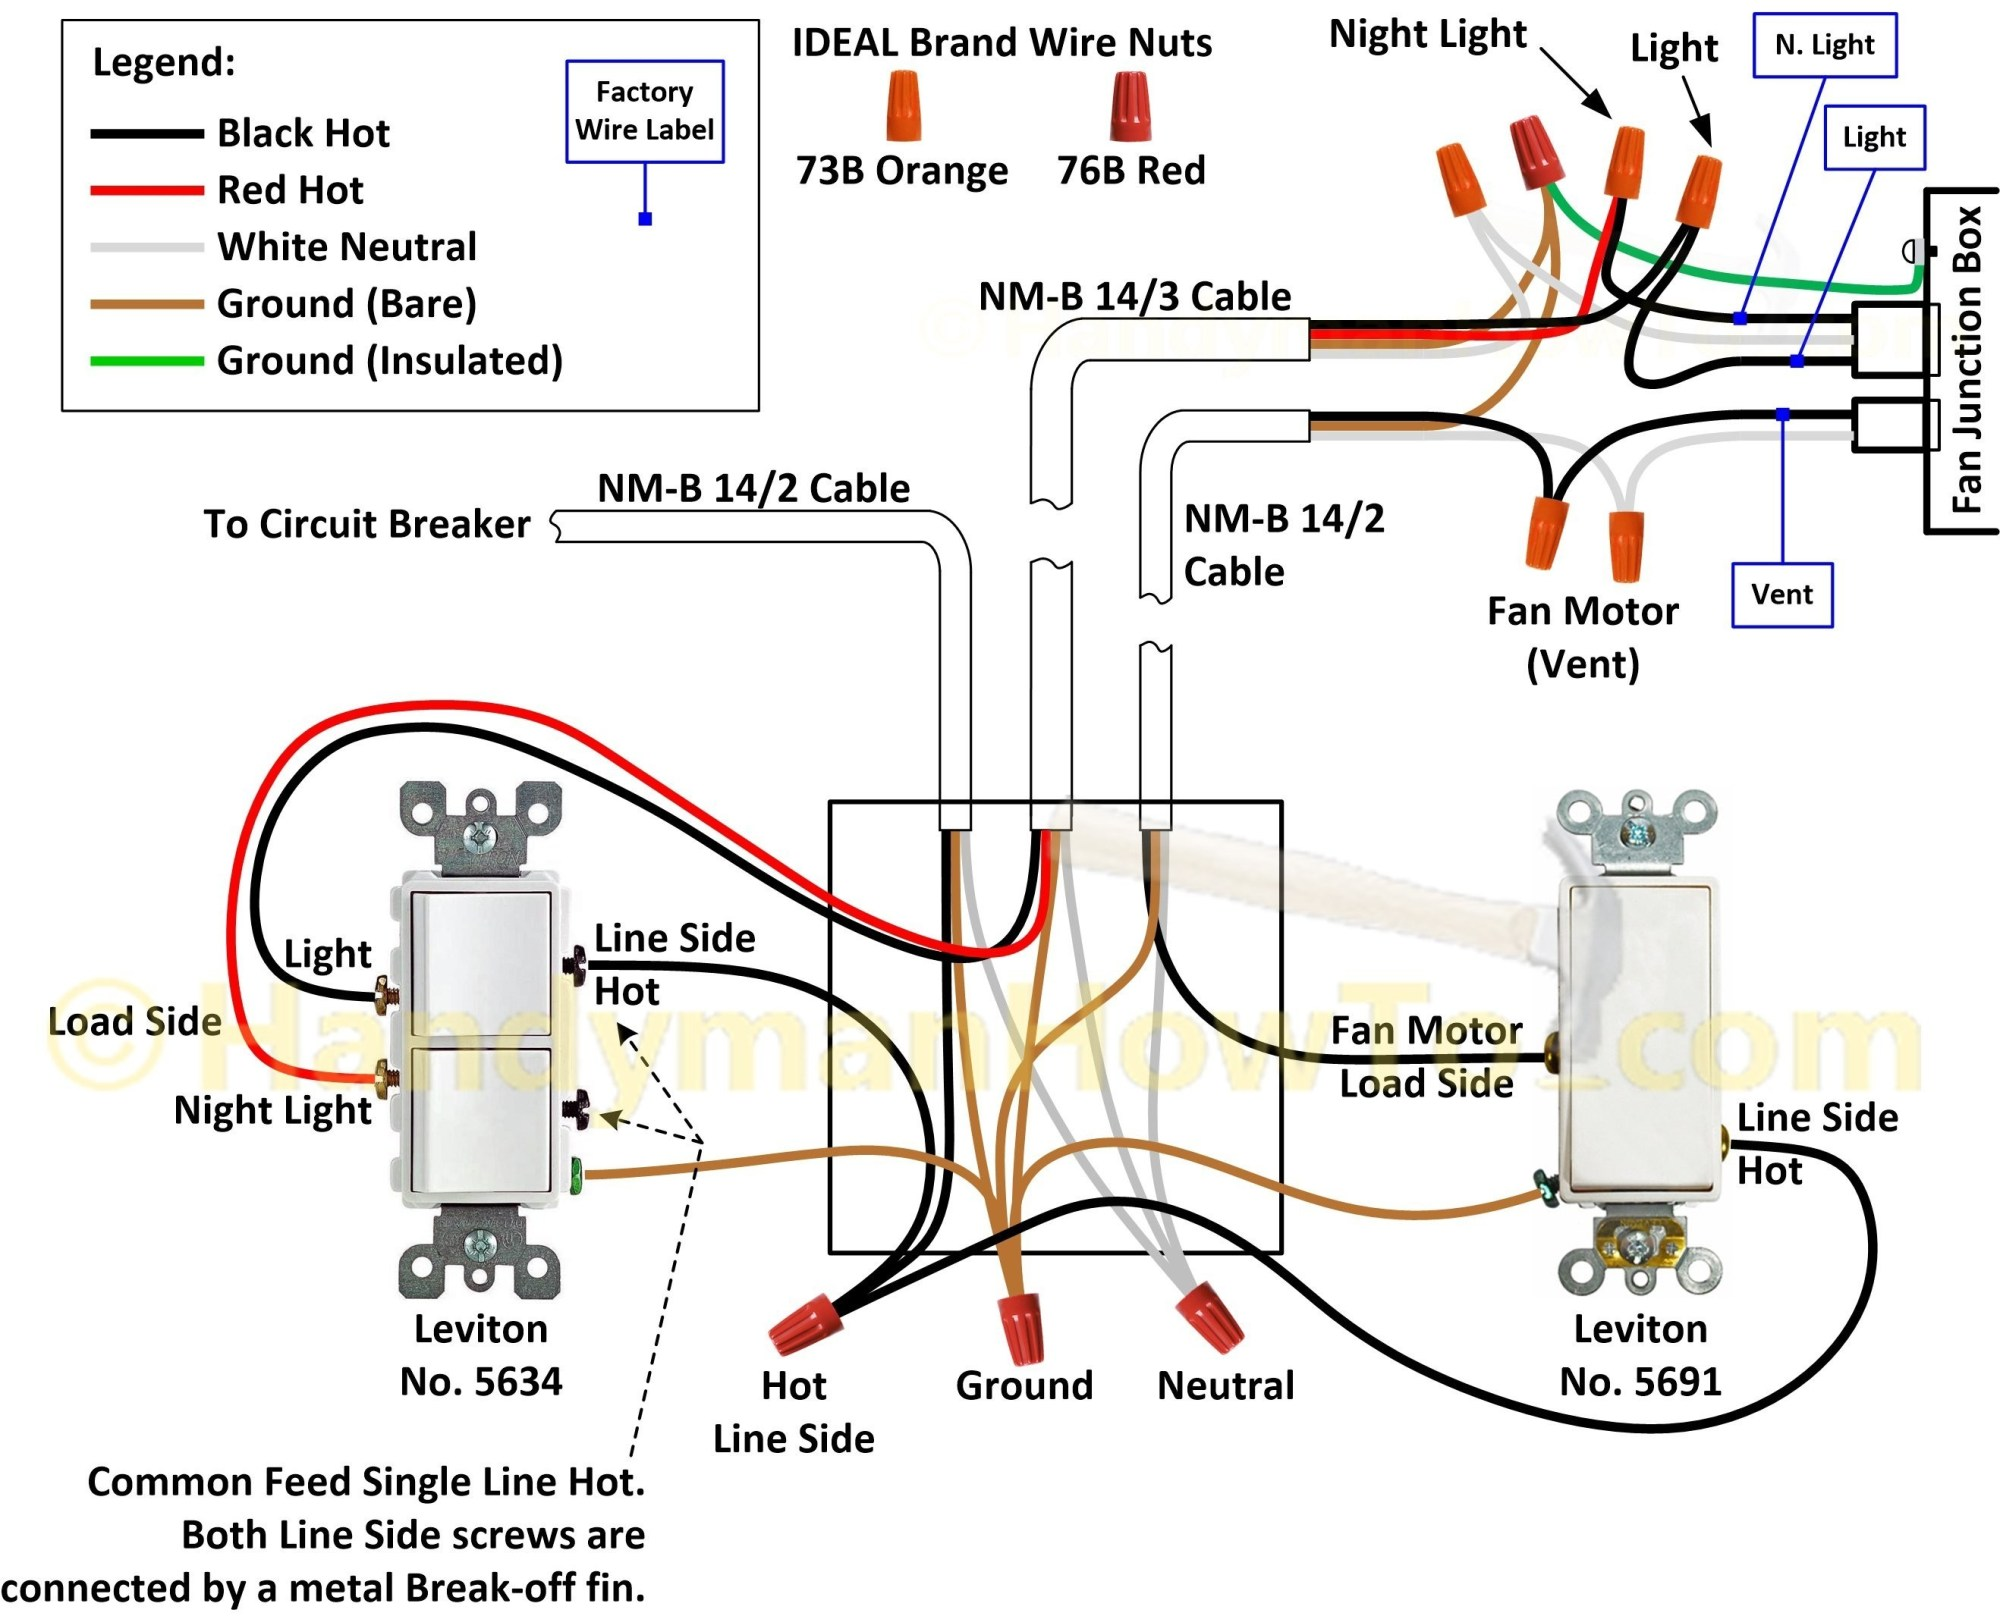 hight resolution of gallery of canarm ceiling fan wiring diagram download ceiling fans with lights wiring diagram bathroom ceiling fan wiring diagram